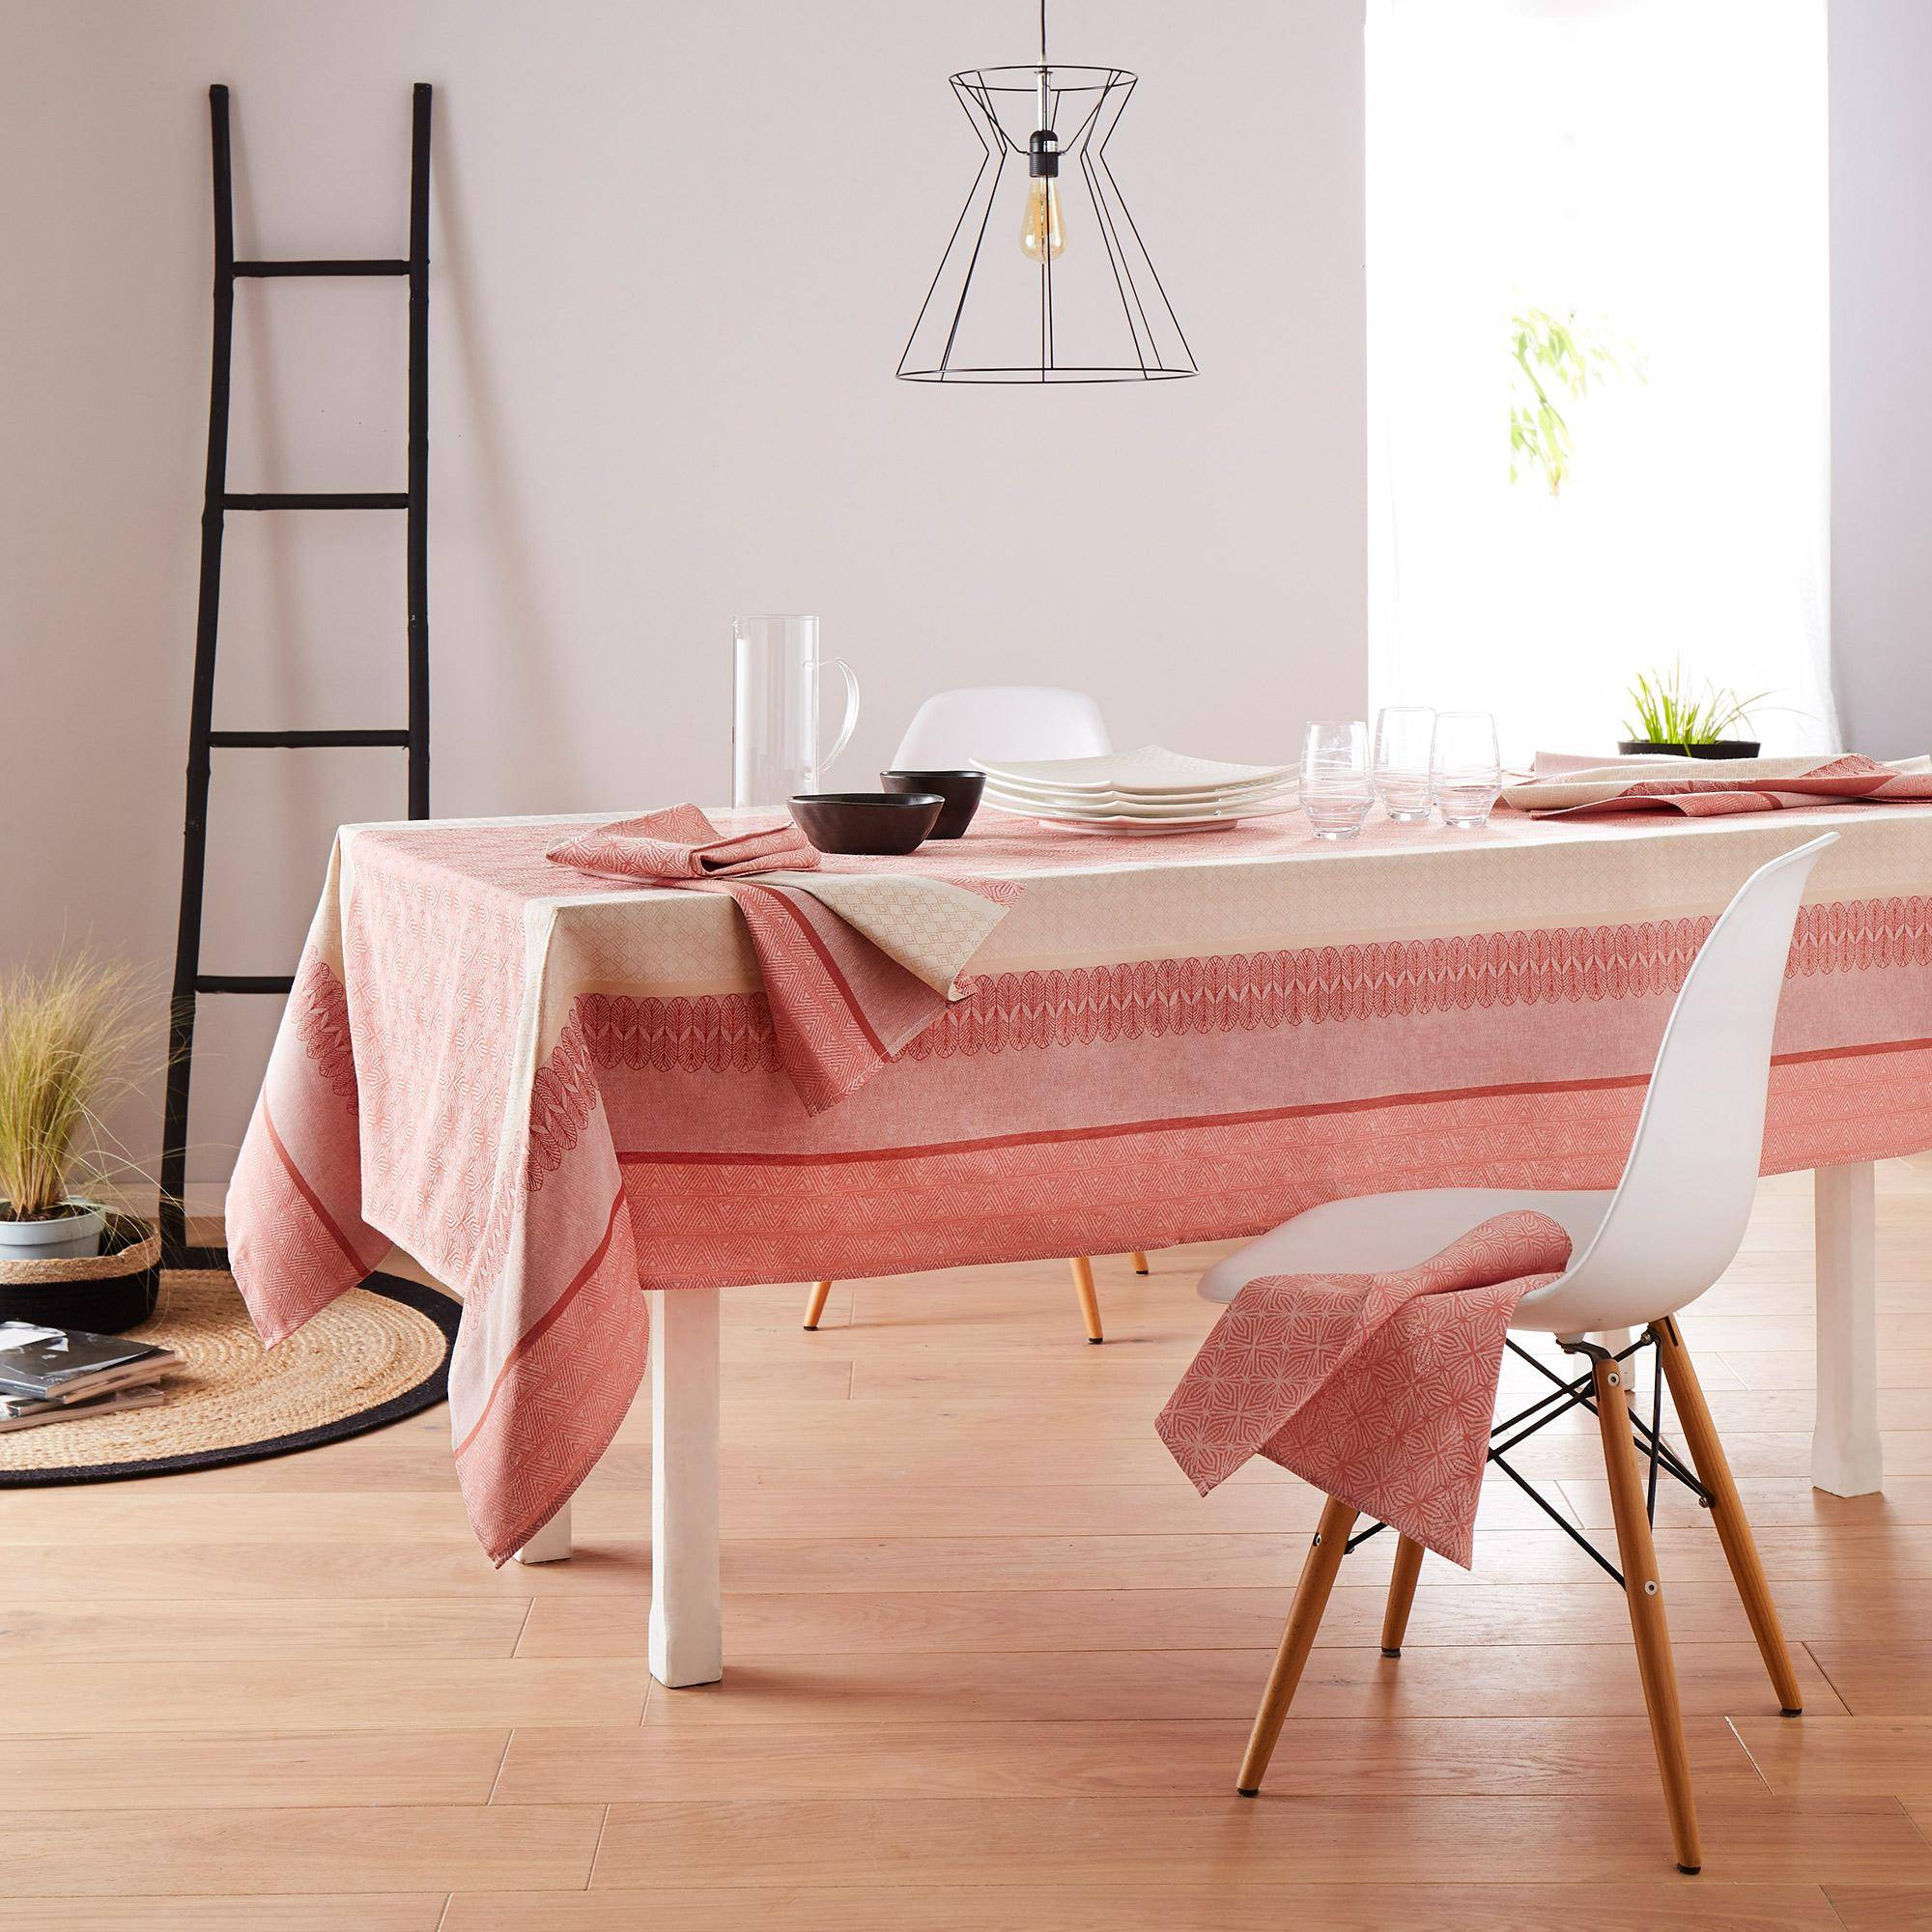 Linnea Nappe carrée 170x170 cm Jacquard 100% coton + enduction acrylique CHARLESTON rouge Corail